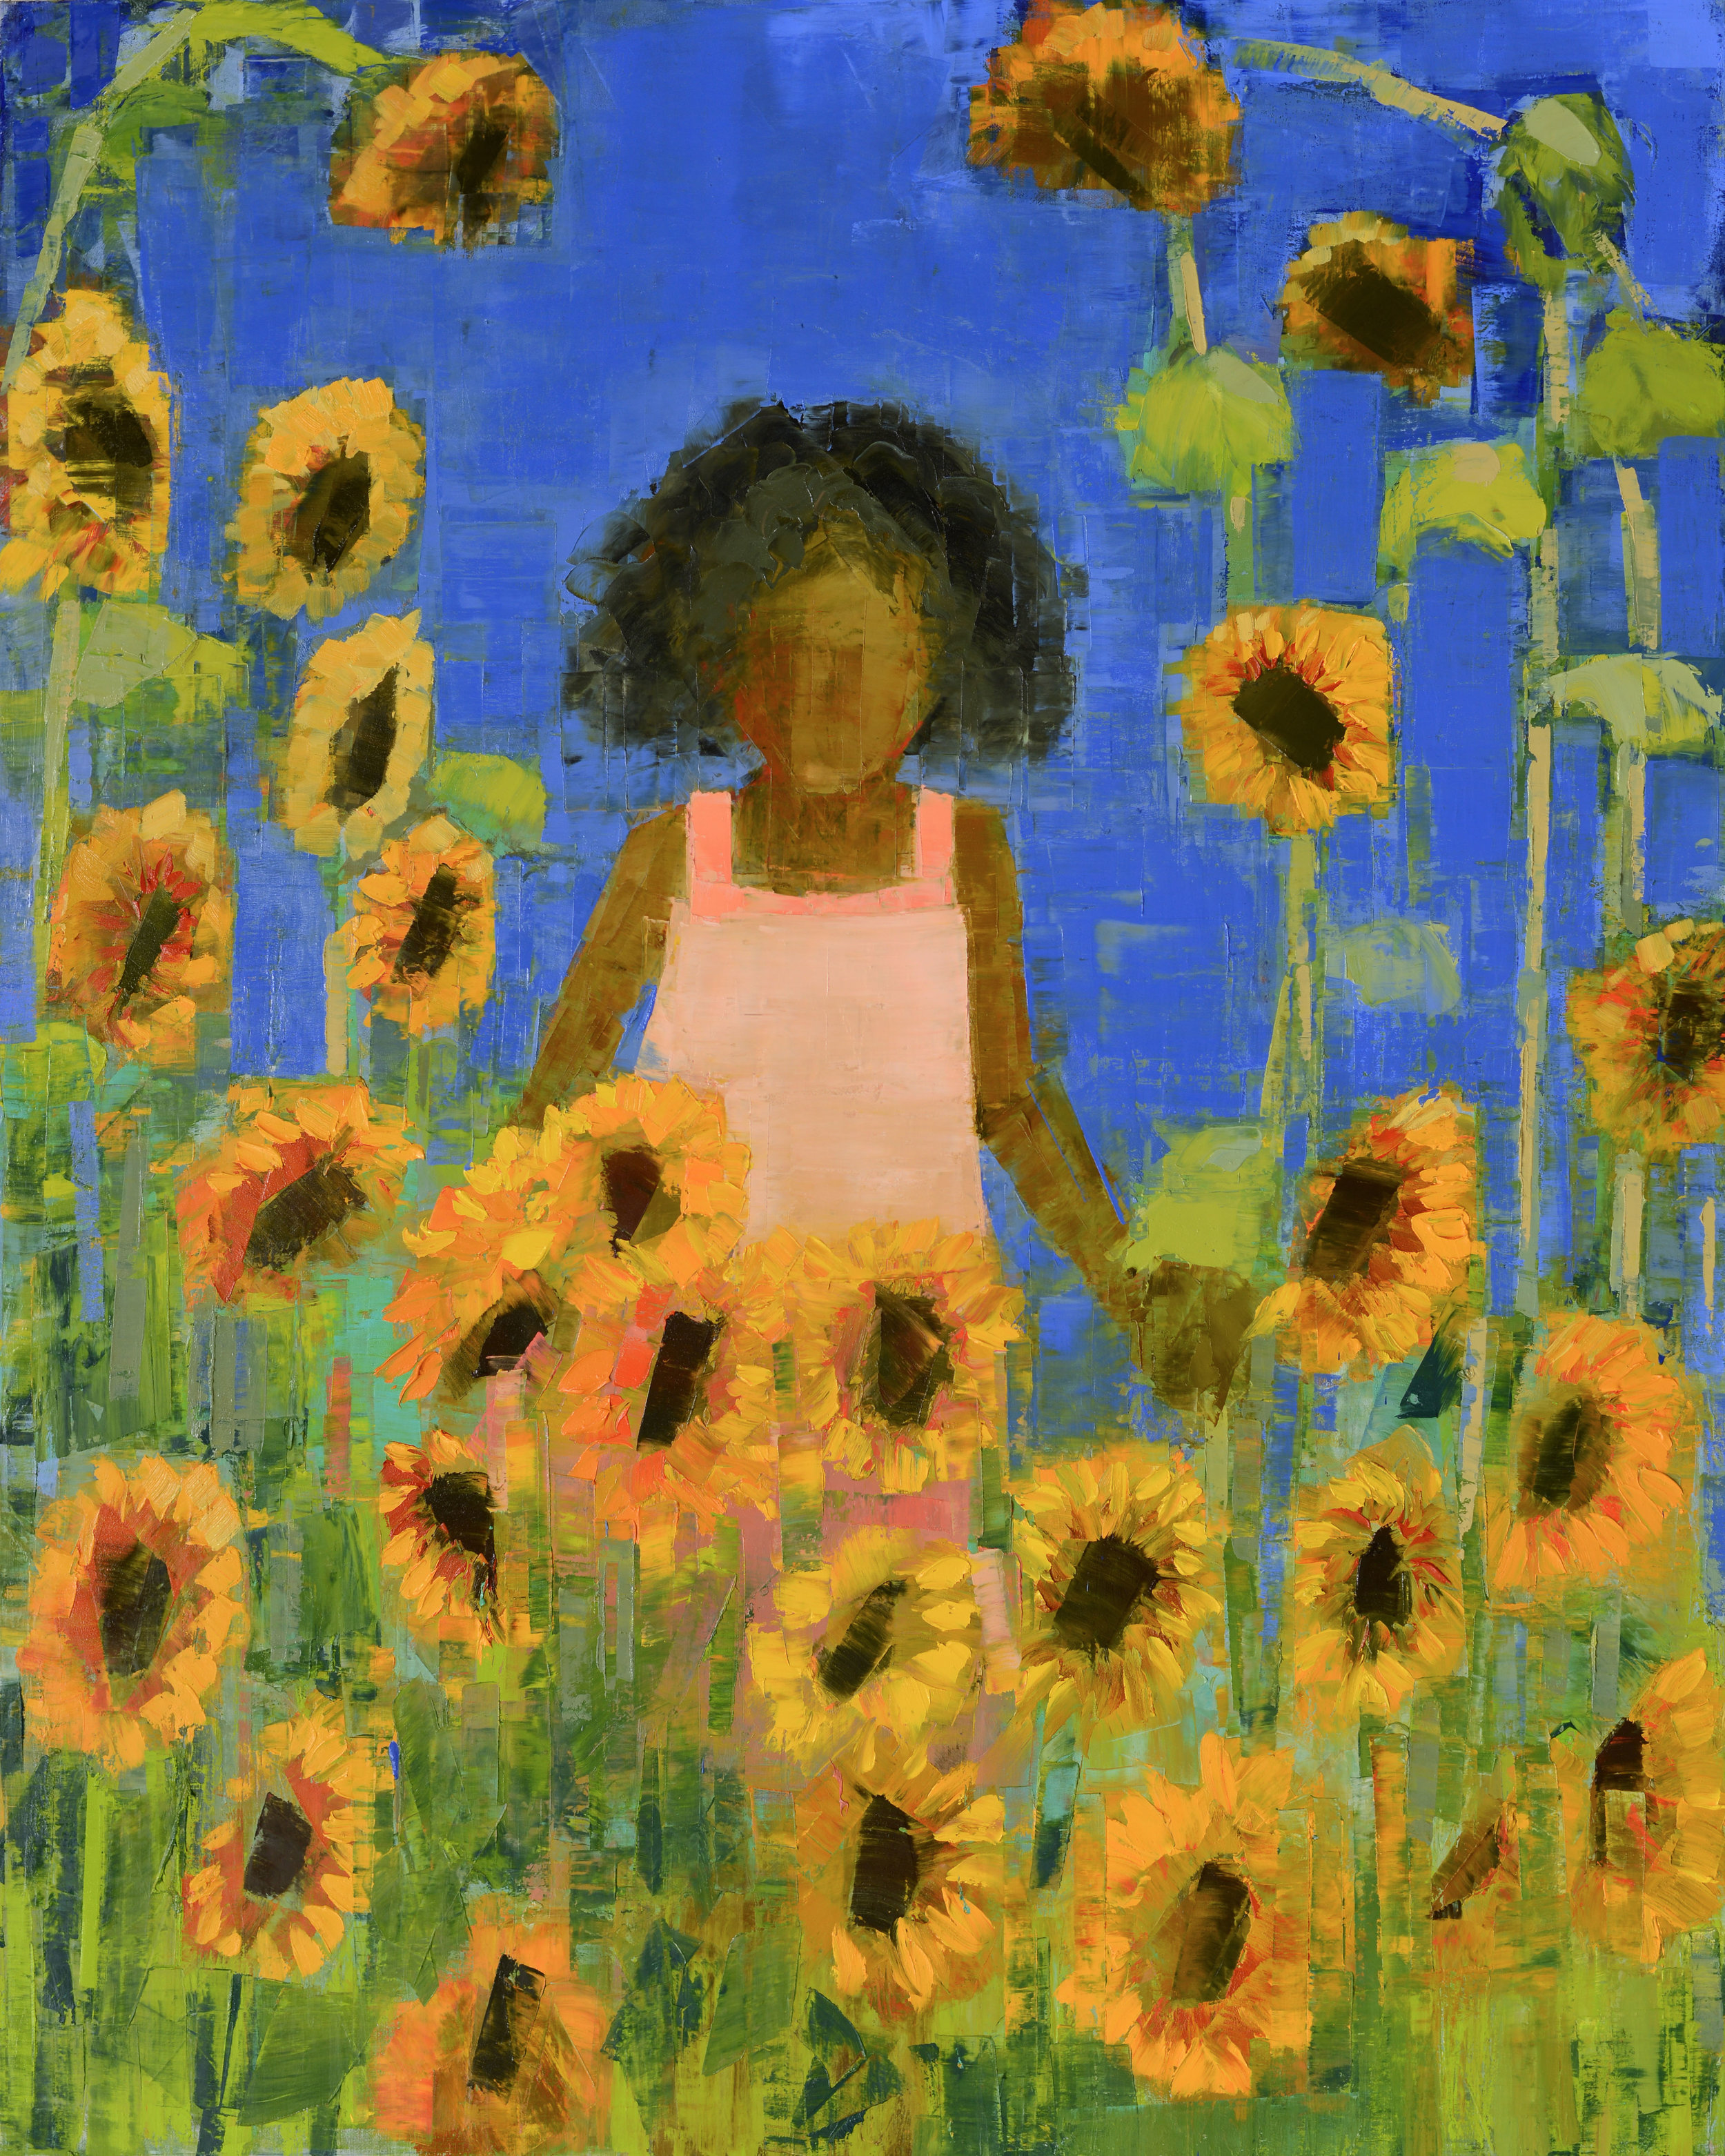 TRAVELER (SUNFLOWERS)   -PRIVATE COLLECTION-  60 x 48 inches  oil and wax on linen